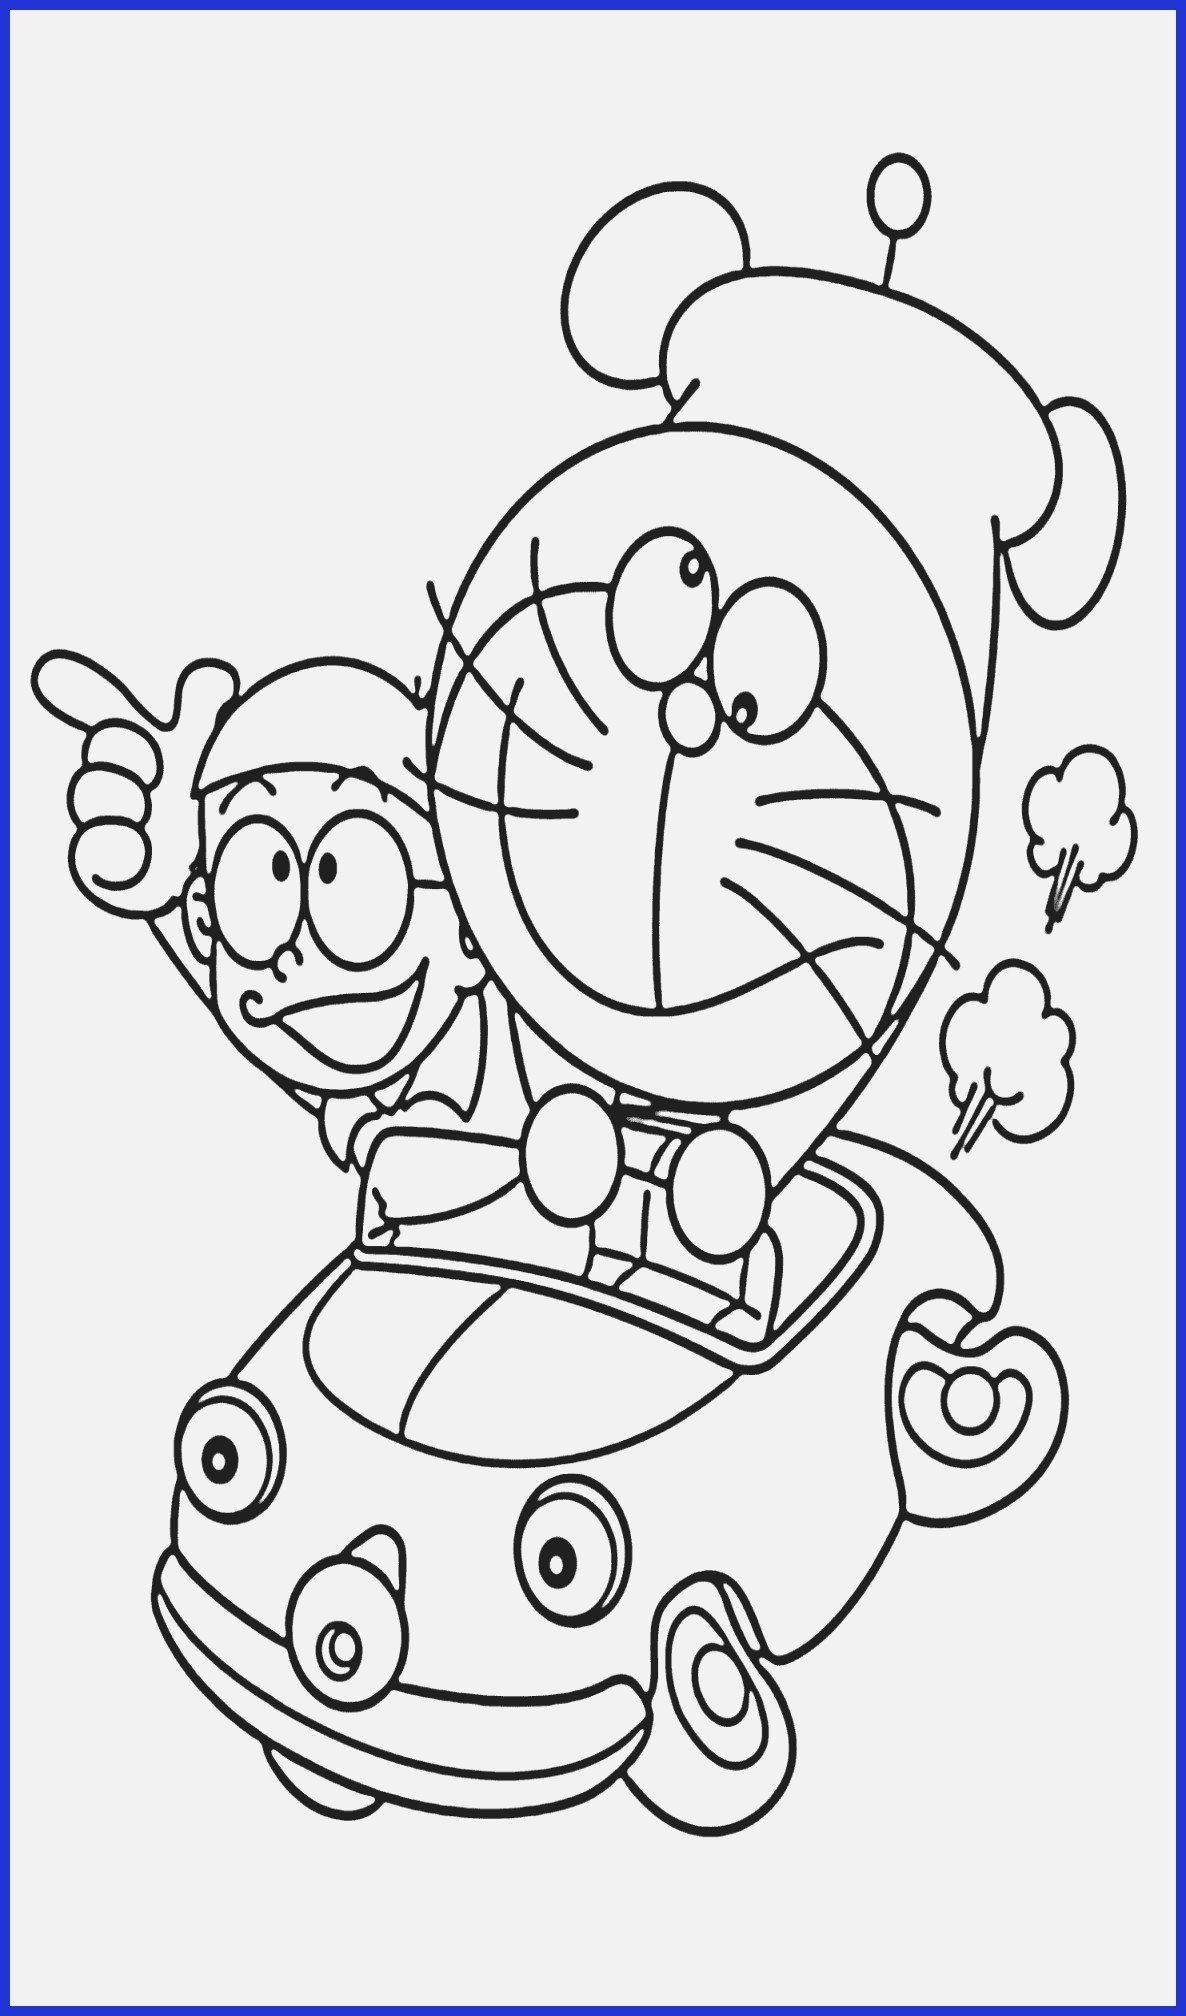 Johnny Appleseed Coloring Page New 16 Inspirational